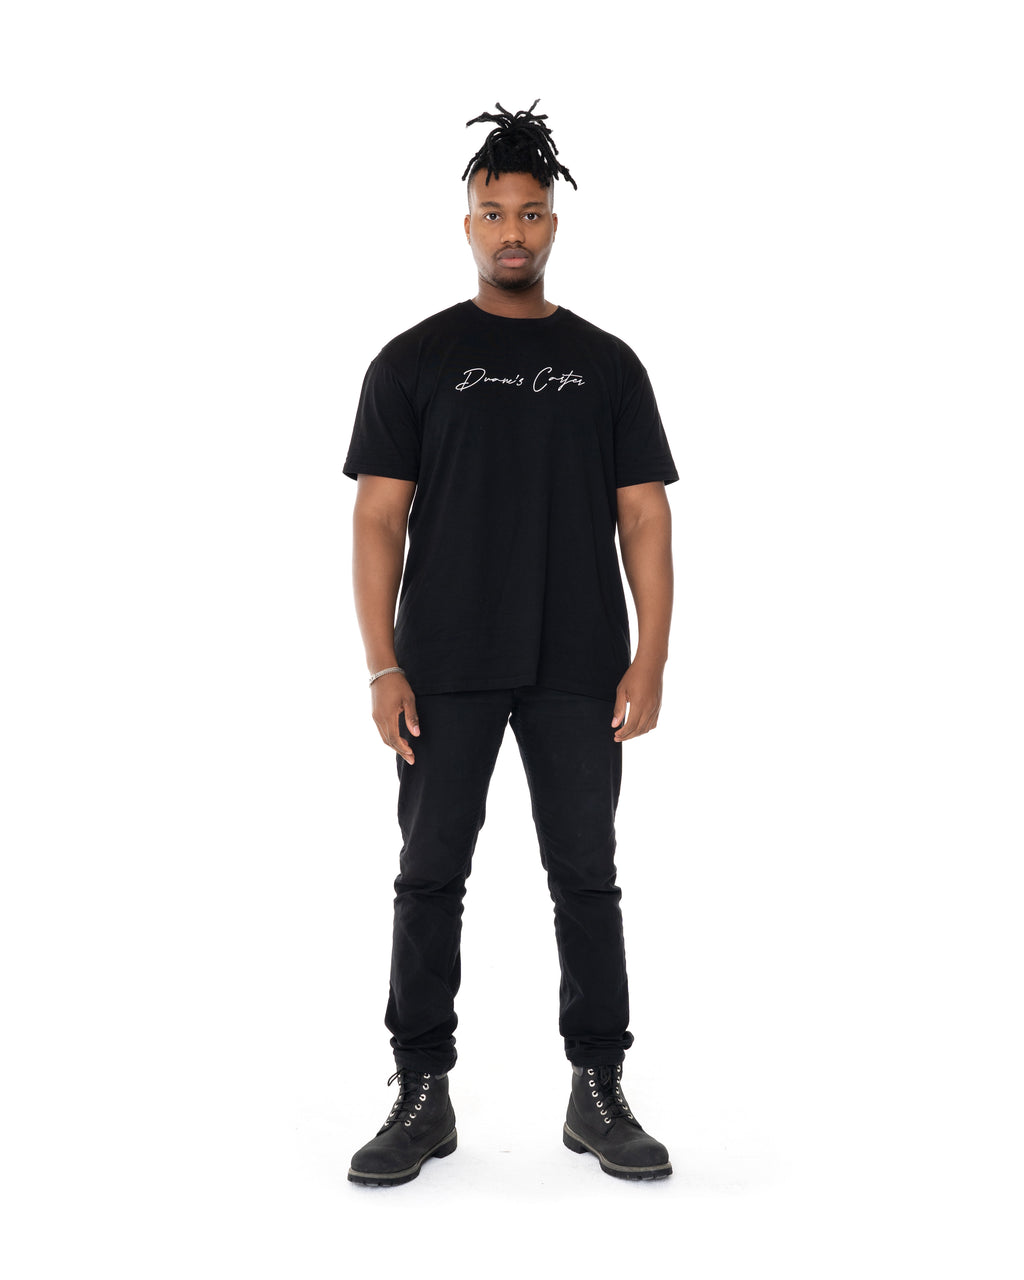 Mens Black signature Tee